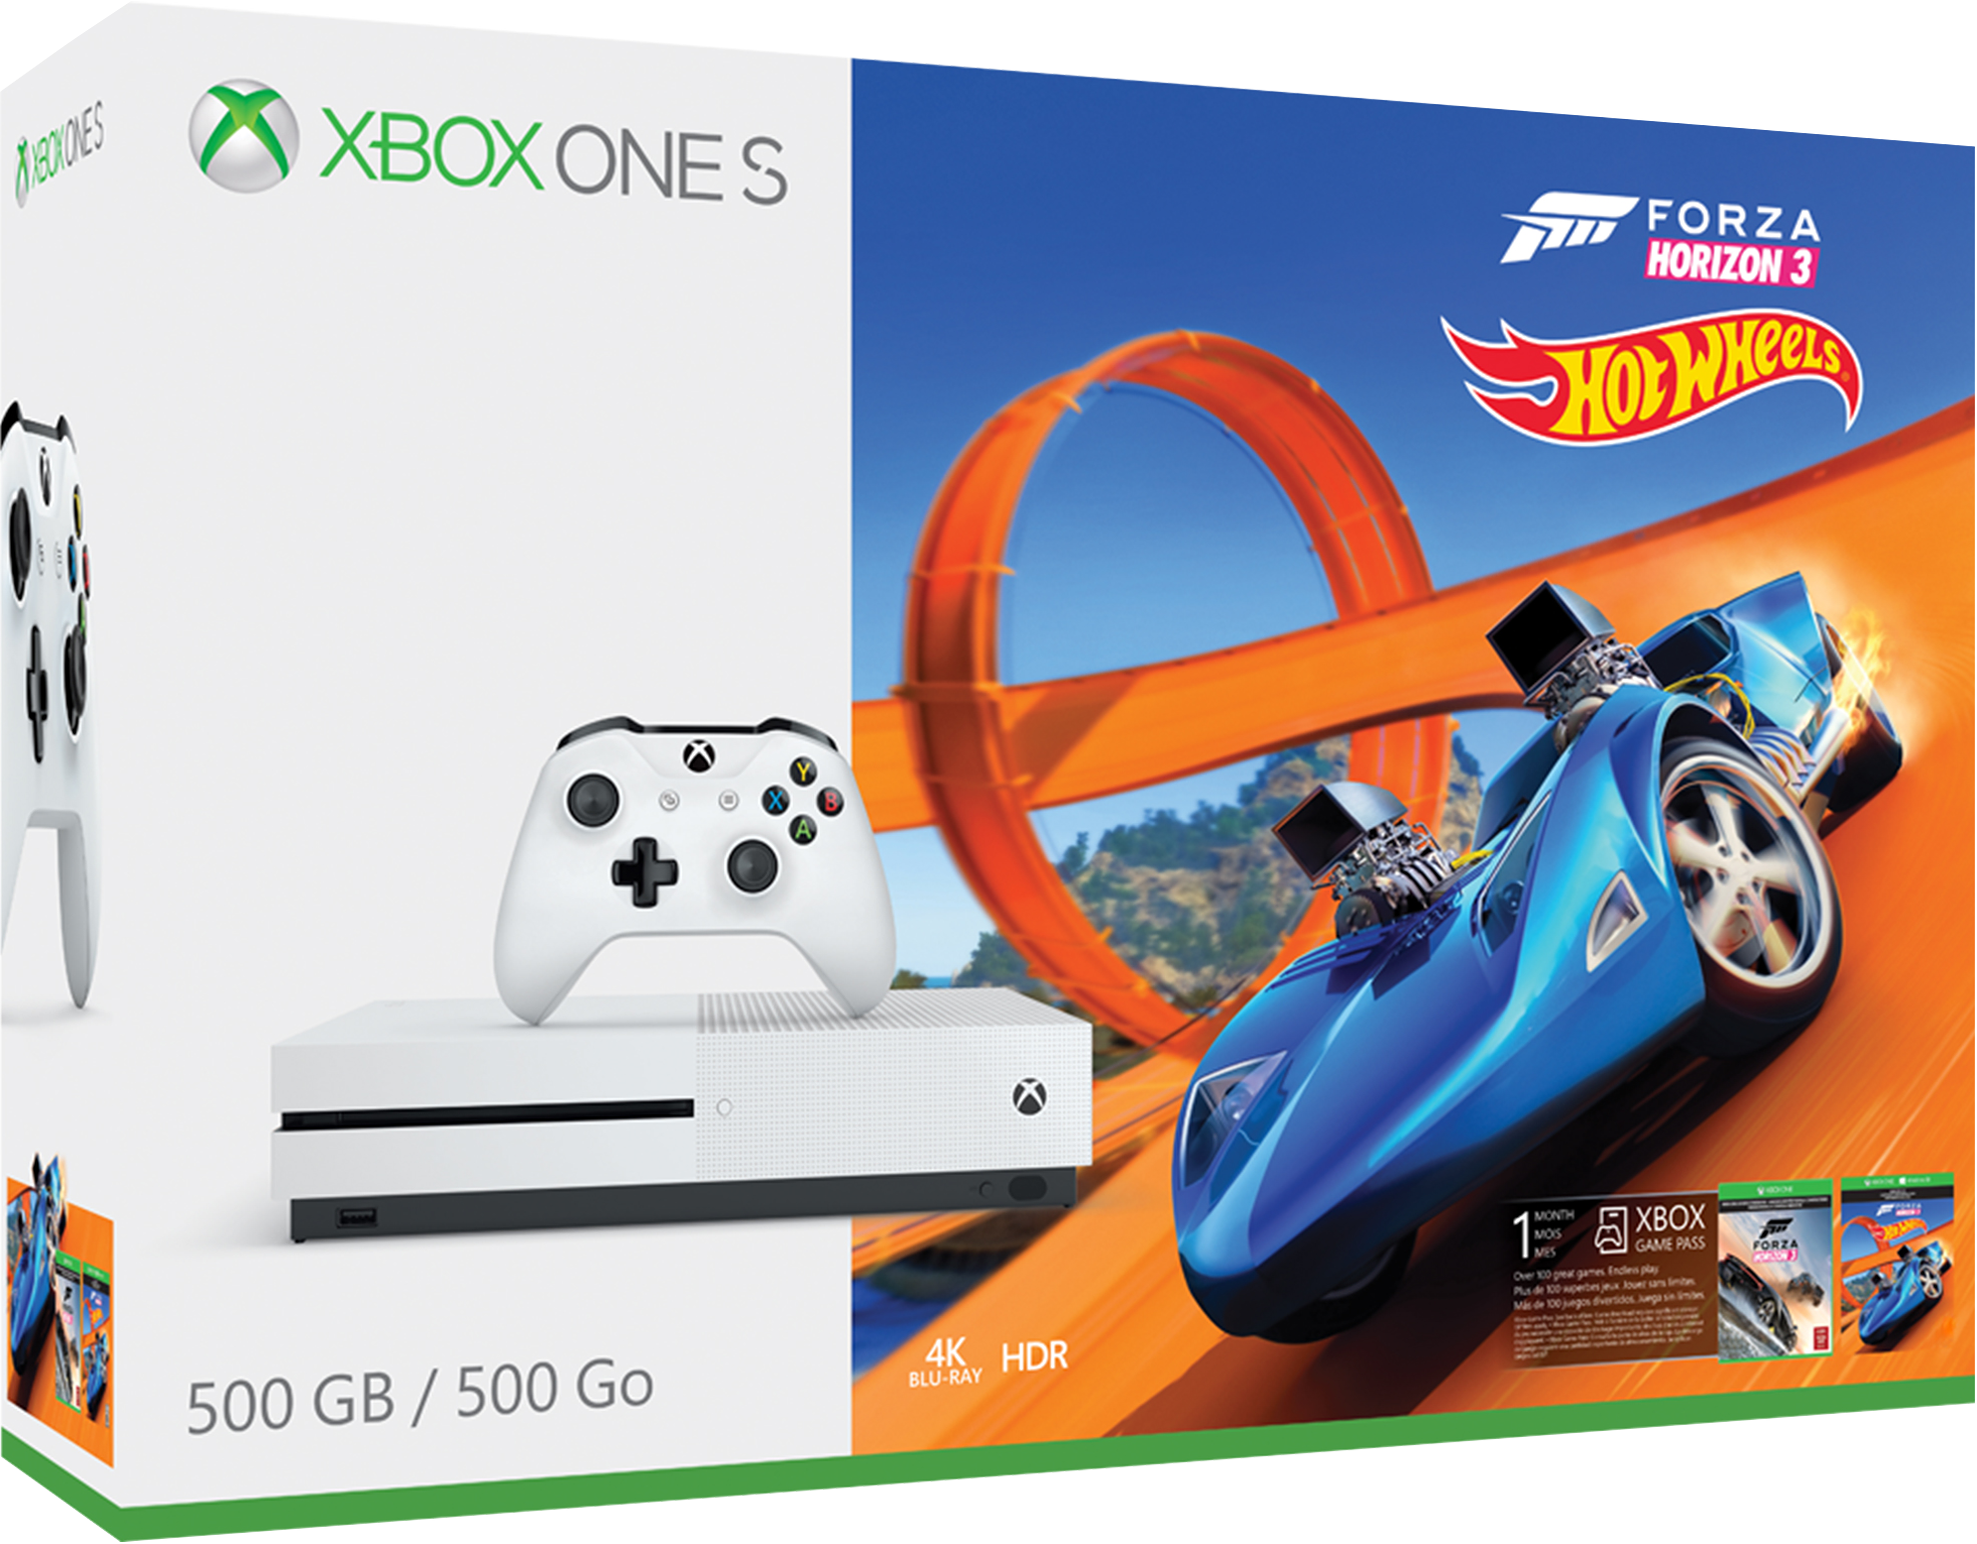 Xbox One S 500GB Console - Forza Horizon 3 Hot Wheels Bundle Deal